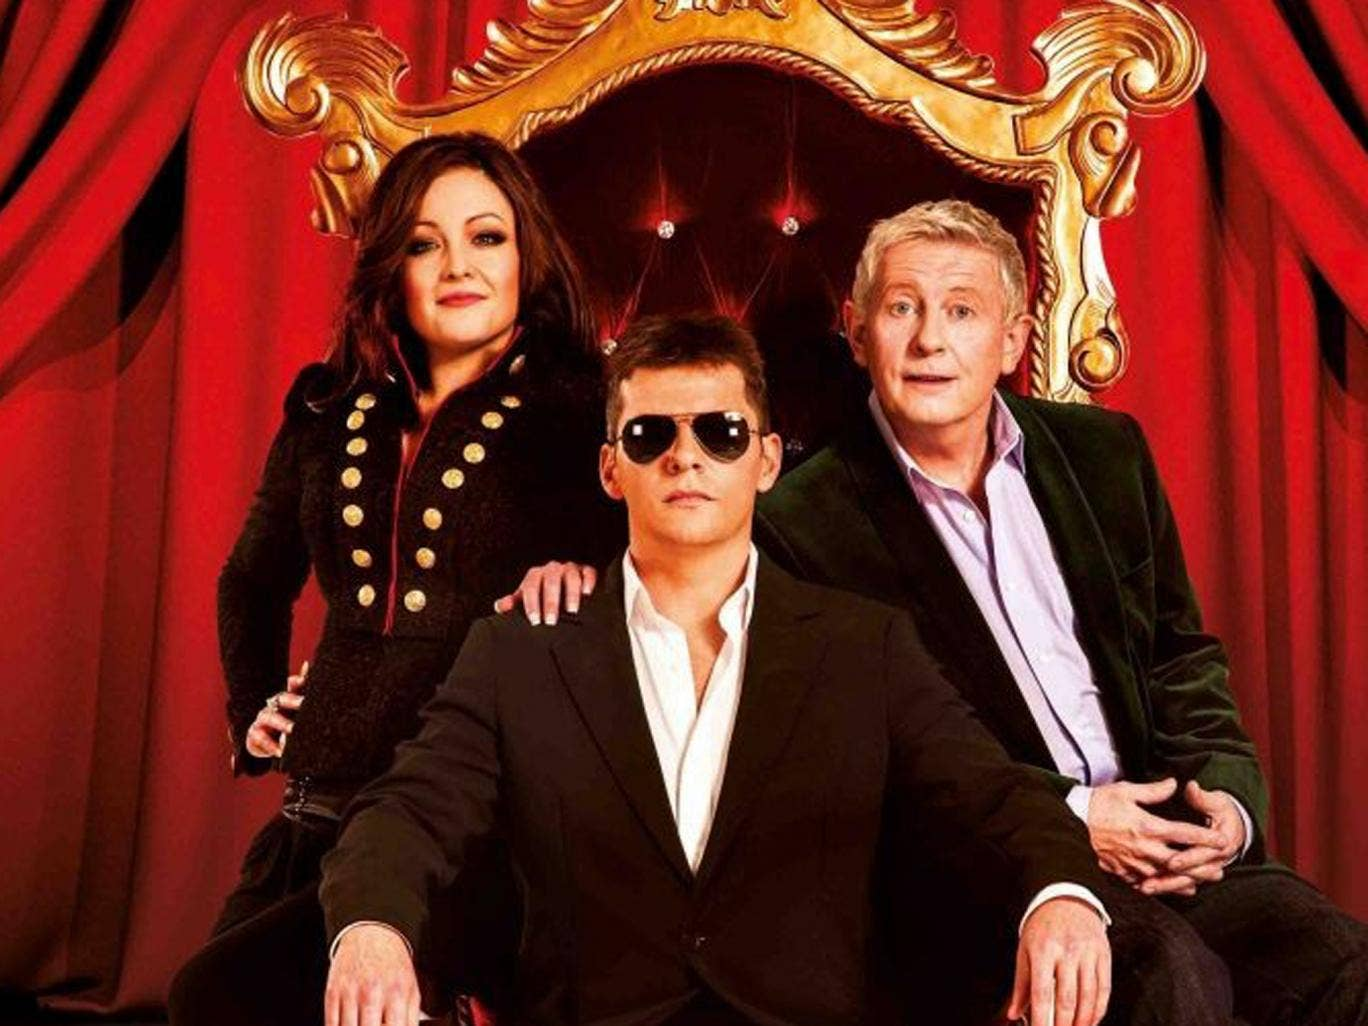 I Can't Sing! stars former EastEnders actor Nigel Harman (centre) as a character inspired by Simon Cowell